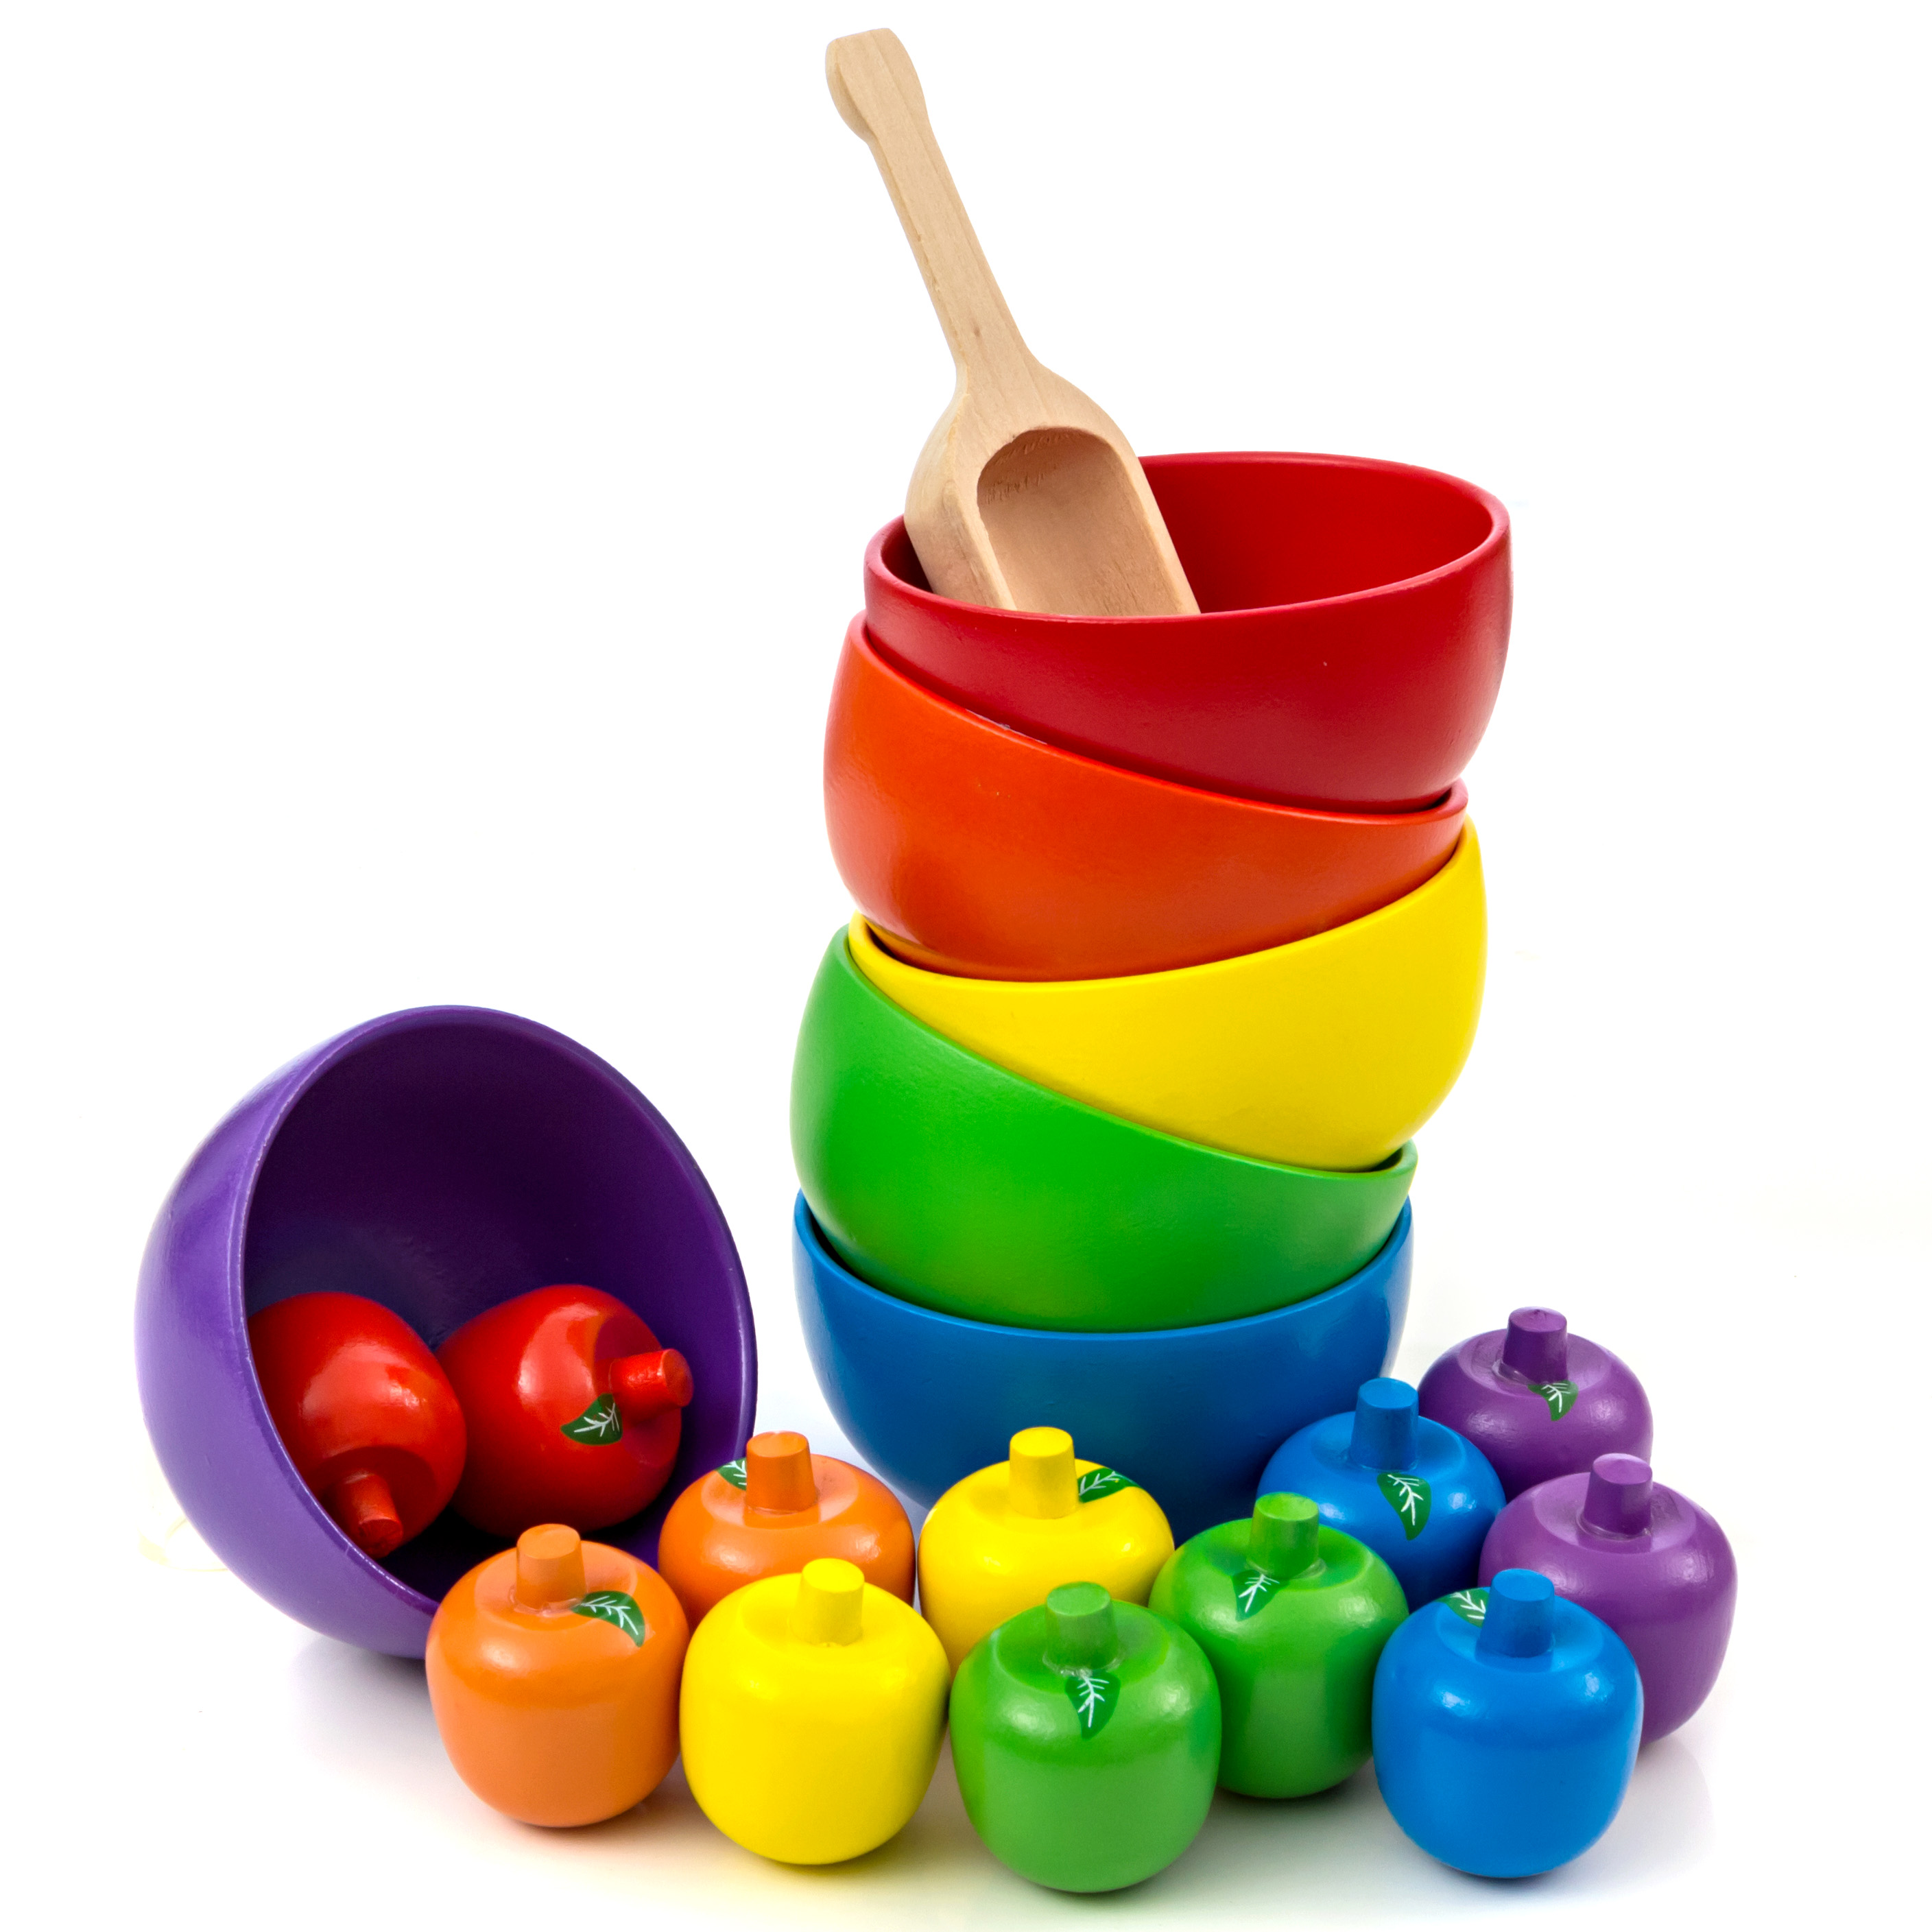 Tulamama - Premium Quality Educational Wooden Toys For ...